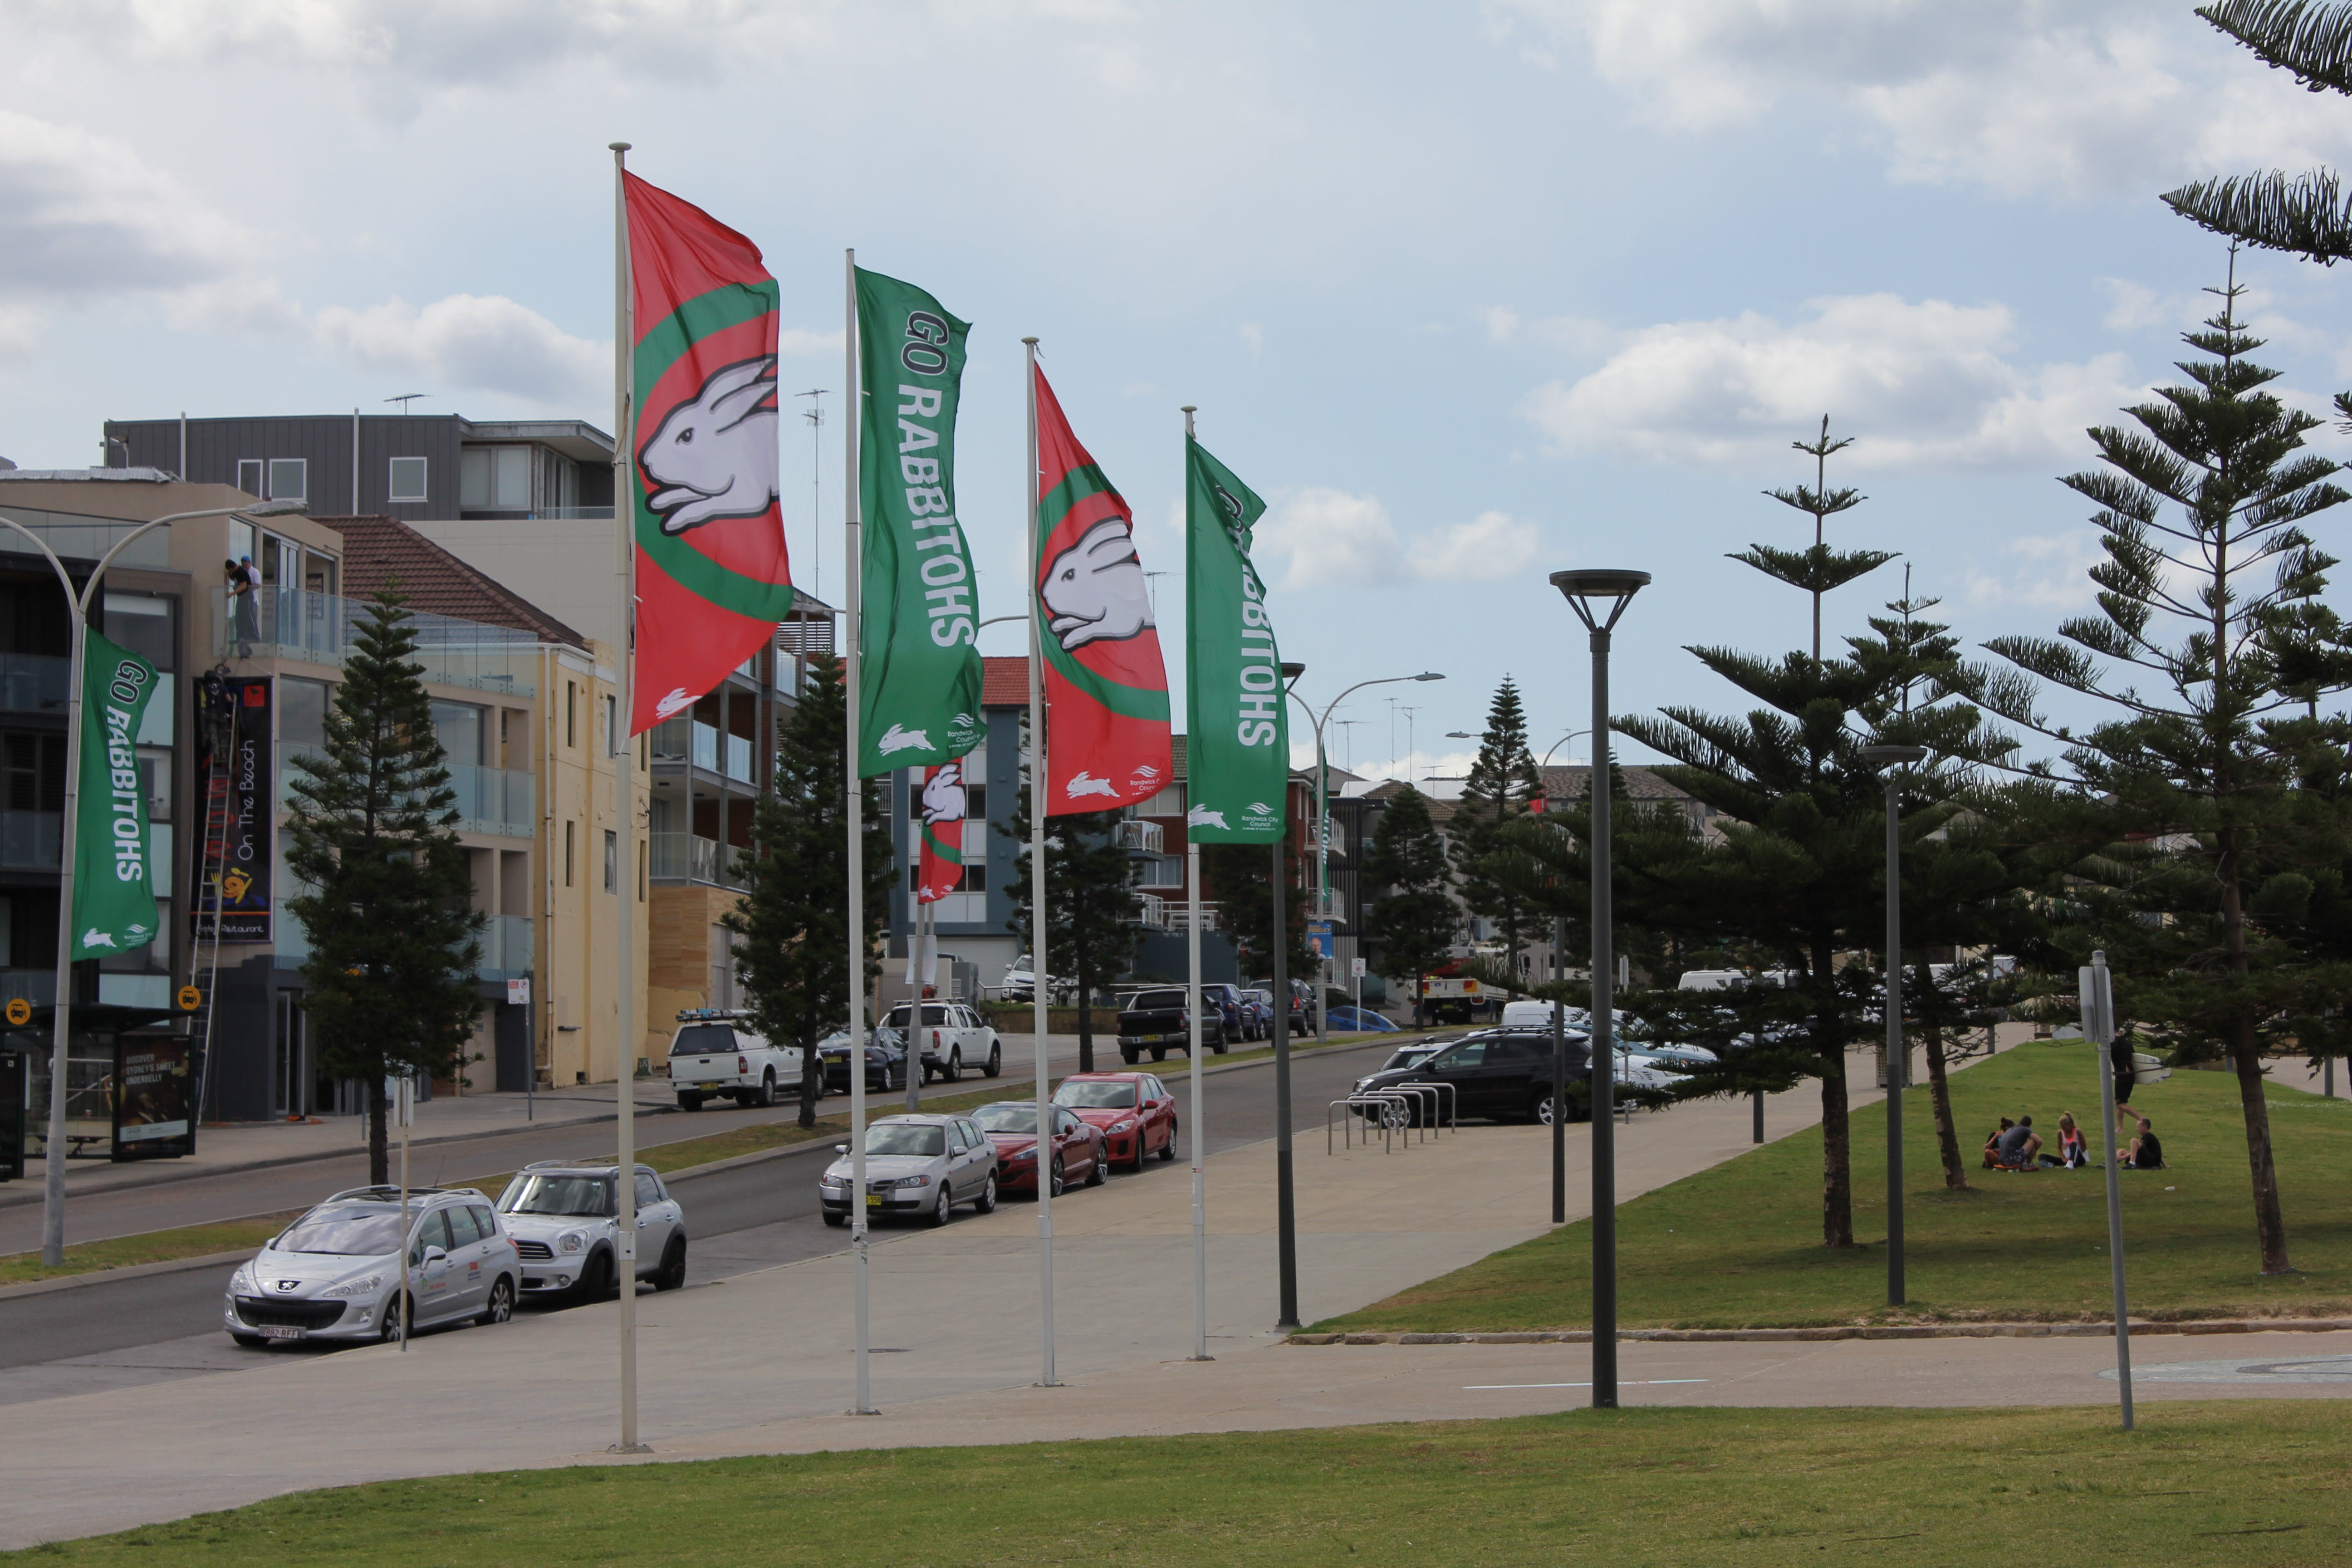 Rabbitohs Banners At Maroubra